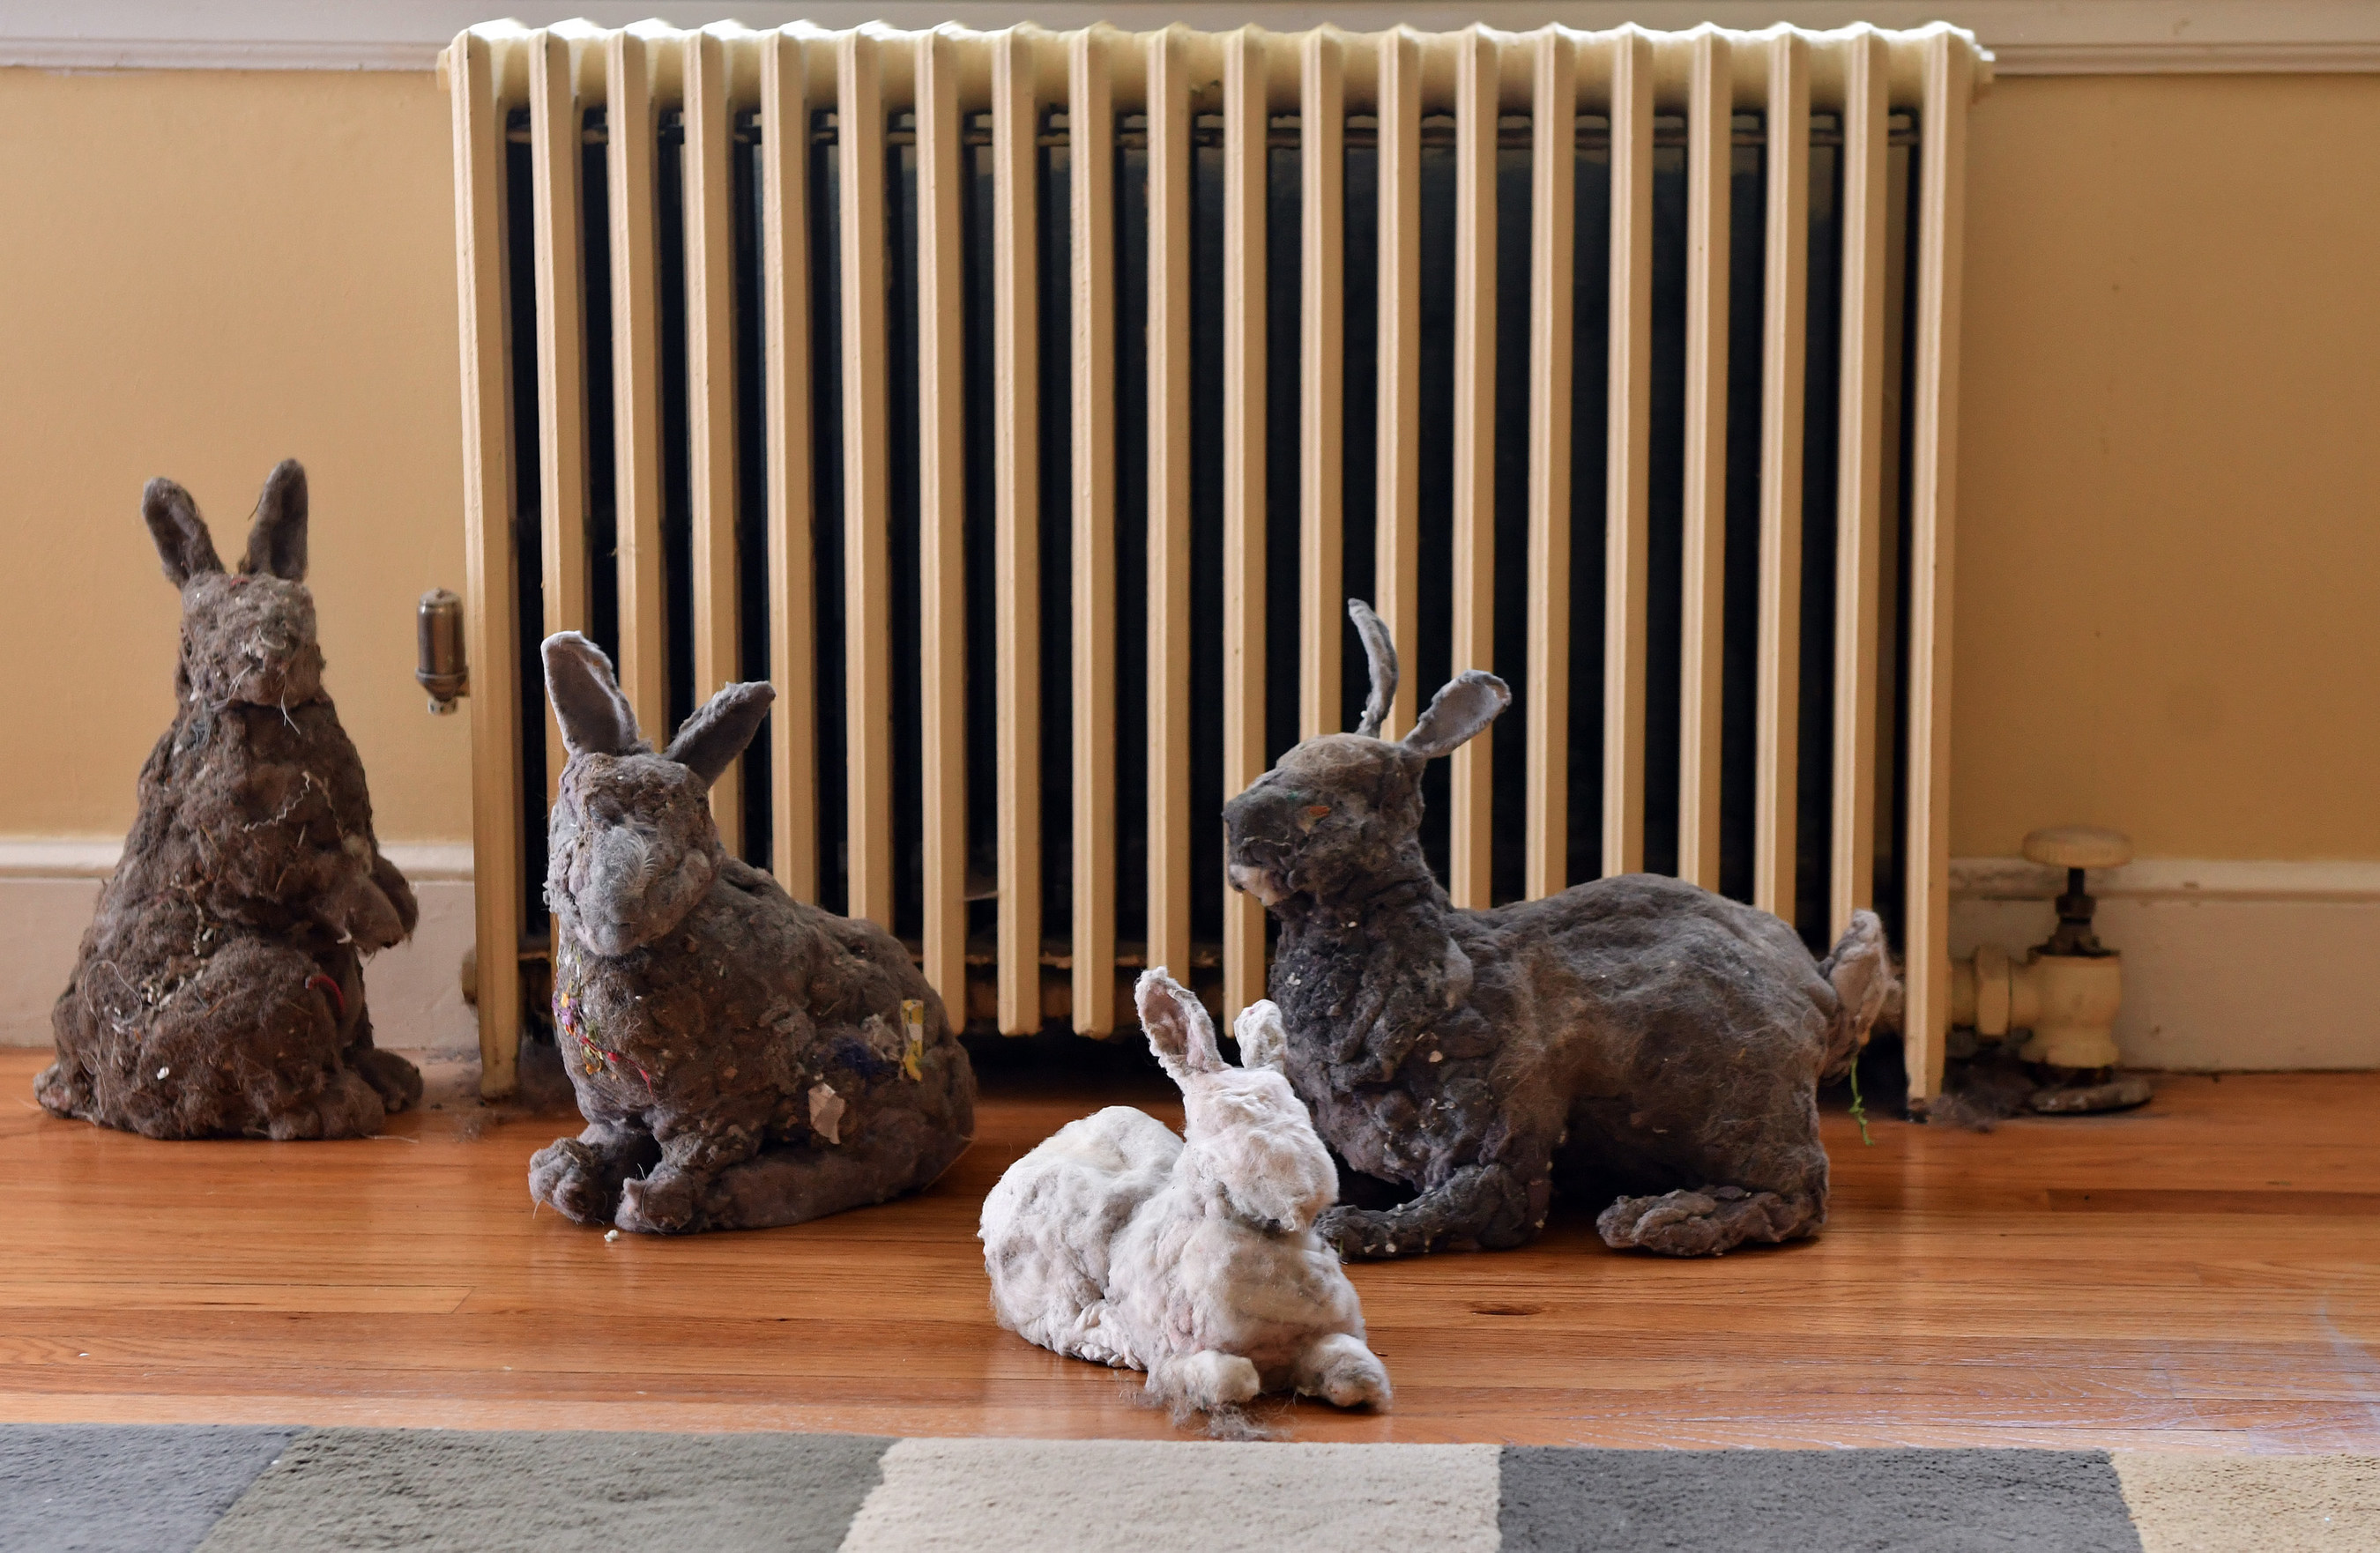 Bunny sculptures by artist Suzanne Proulx, fabricated from household dust, sit together in a living room, Friday, August 26, 2016 in Lexington, Mass. The sculptures, commissioned by Febreze(r) Air Purifiers, were made to represent what 40 pounds of dust, the average amount a U.S. home will collect in a year, could look like. (Josh Reynolds/AP Images for Febreze(r) Air Purifiers)